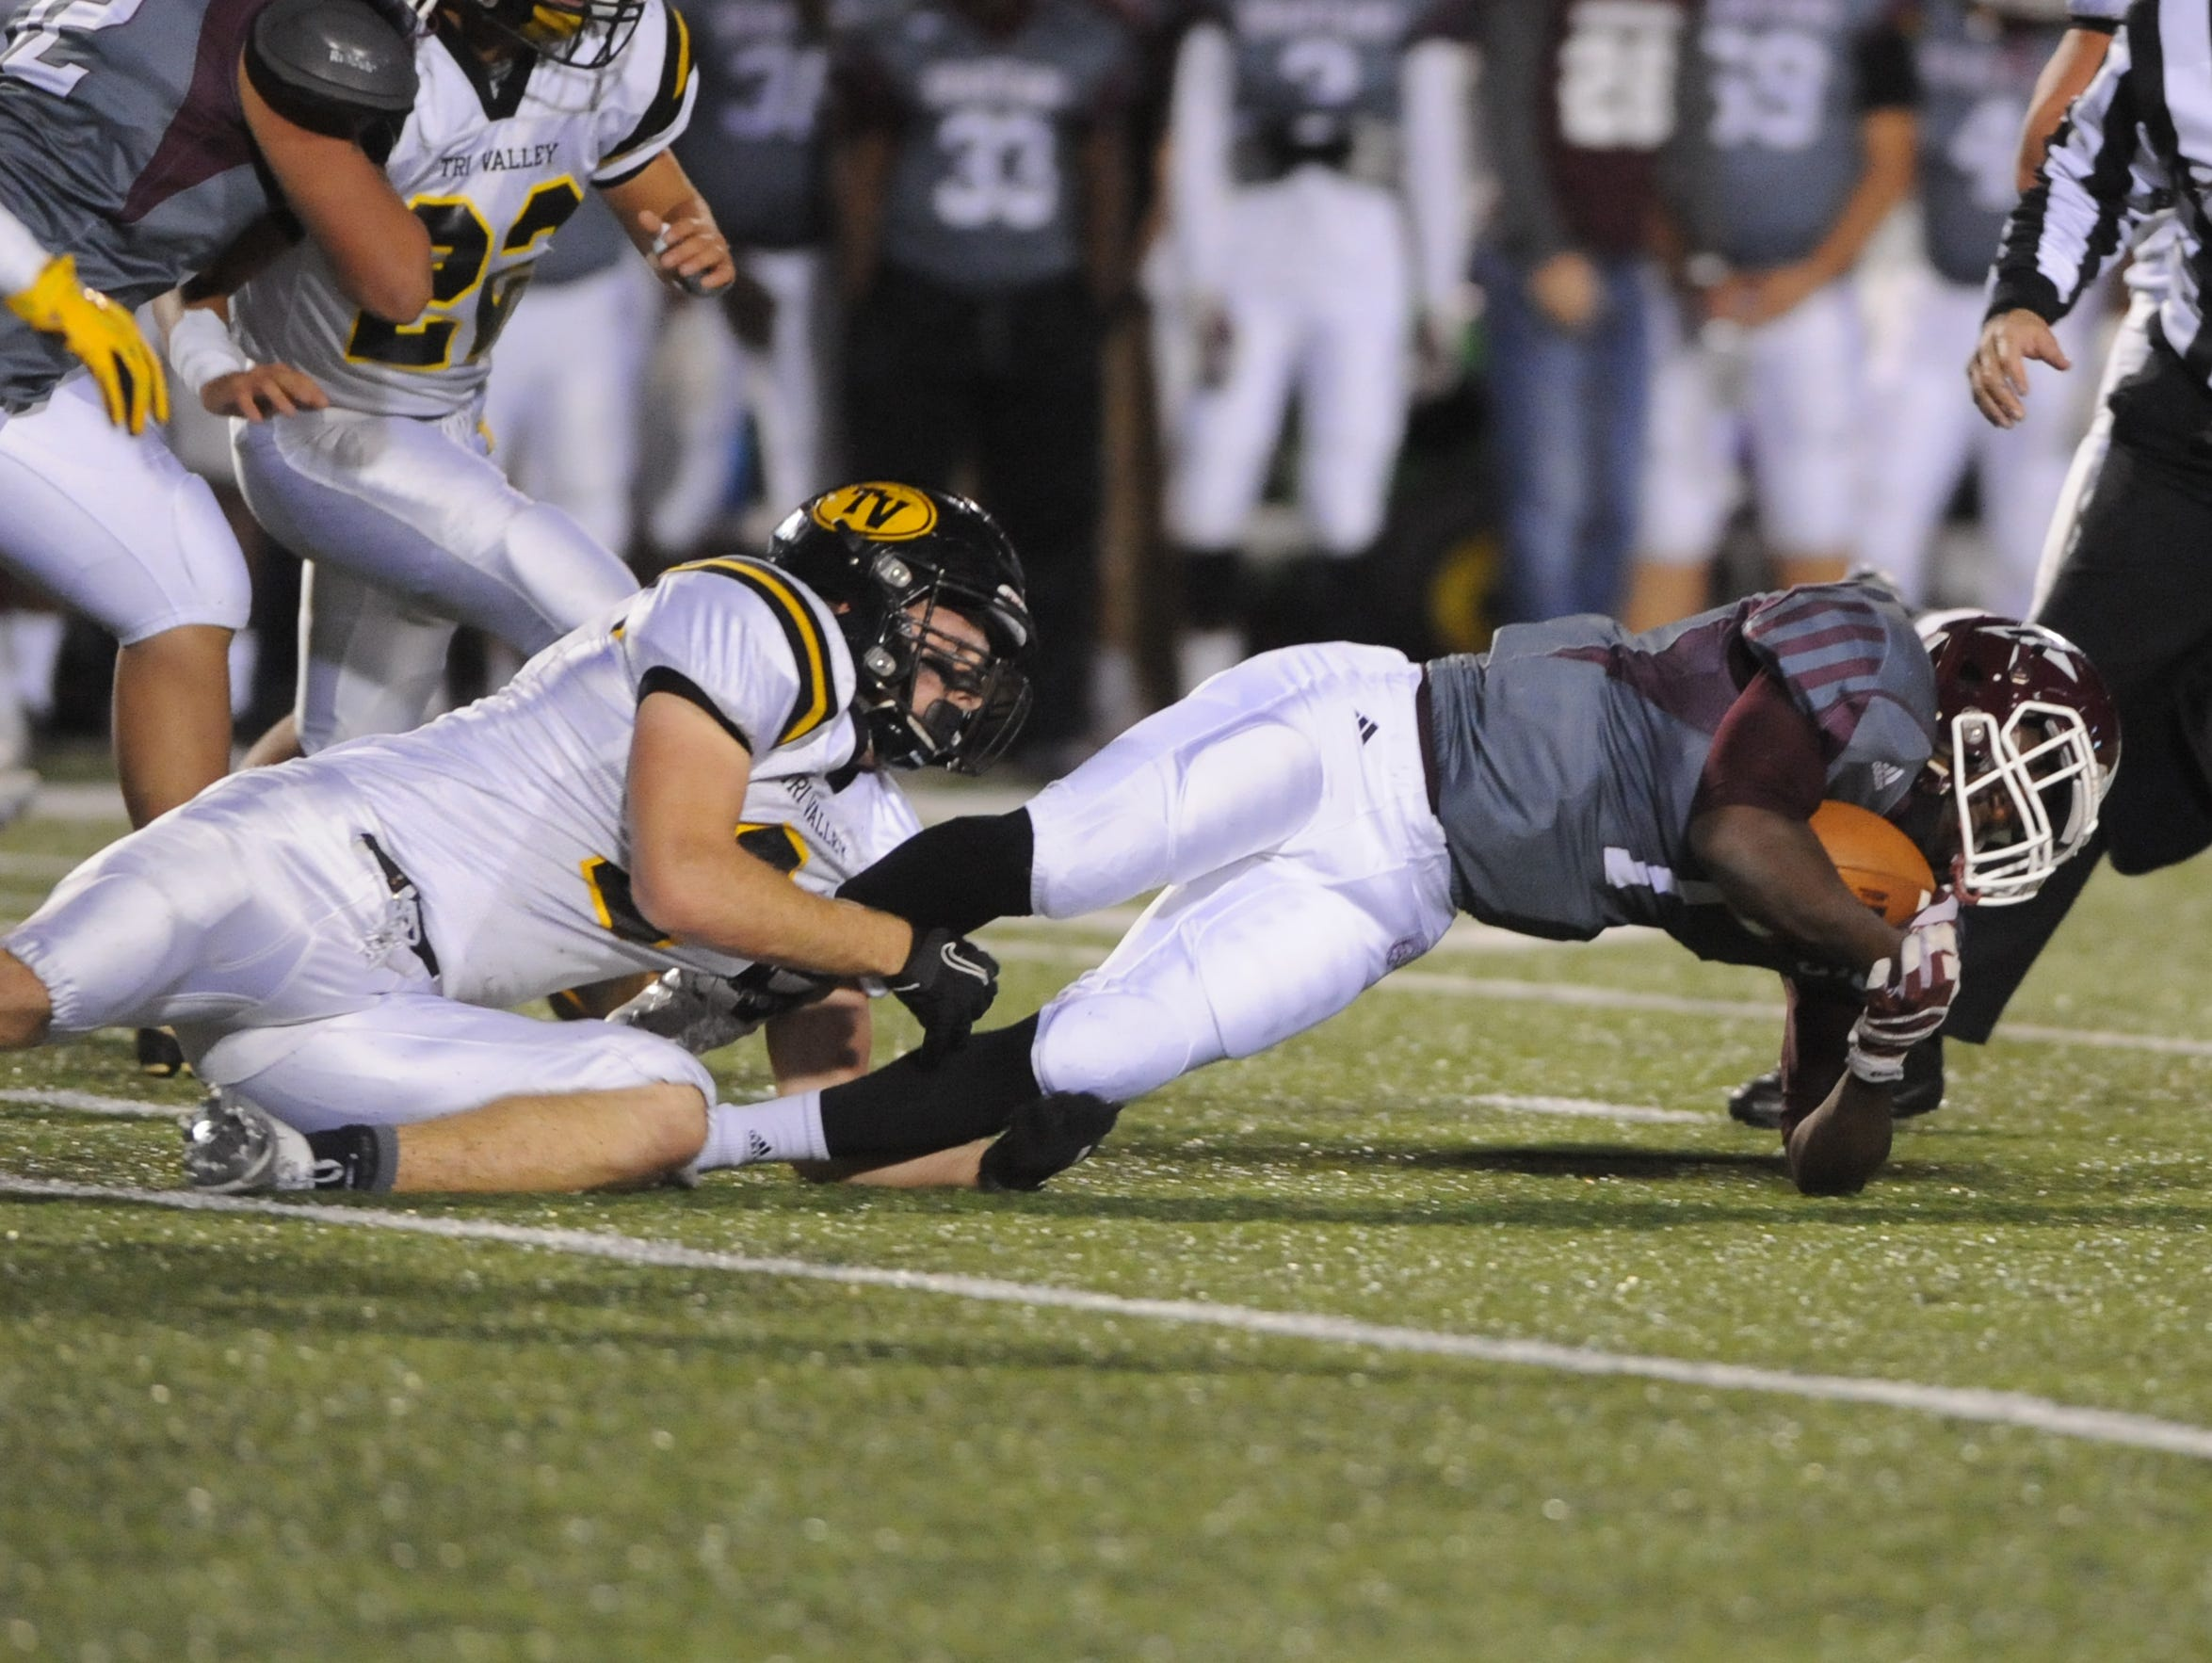 Tri-Valley's Grant Nolder brings down Youngstown Boardman's Koby Adu-Poku during the Scotties 27-2 victory over the Spartans on Friday during their Division II quarterfinals playoff game. Nolder, a senior, was named third-team All-Ohio on Monday.